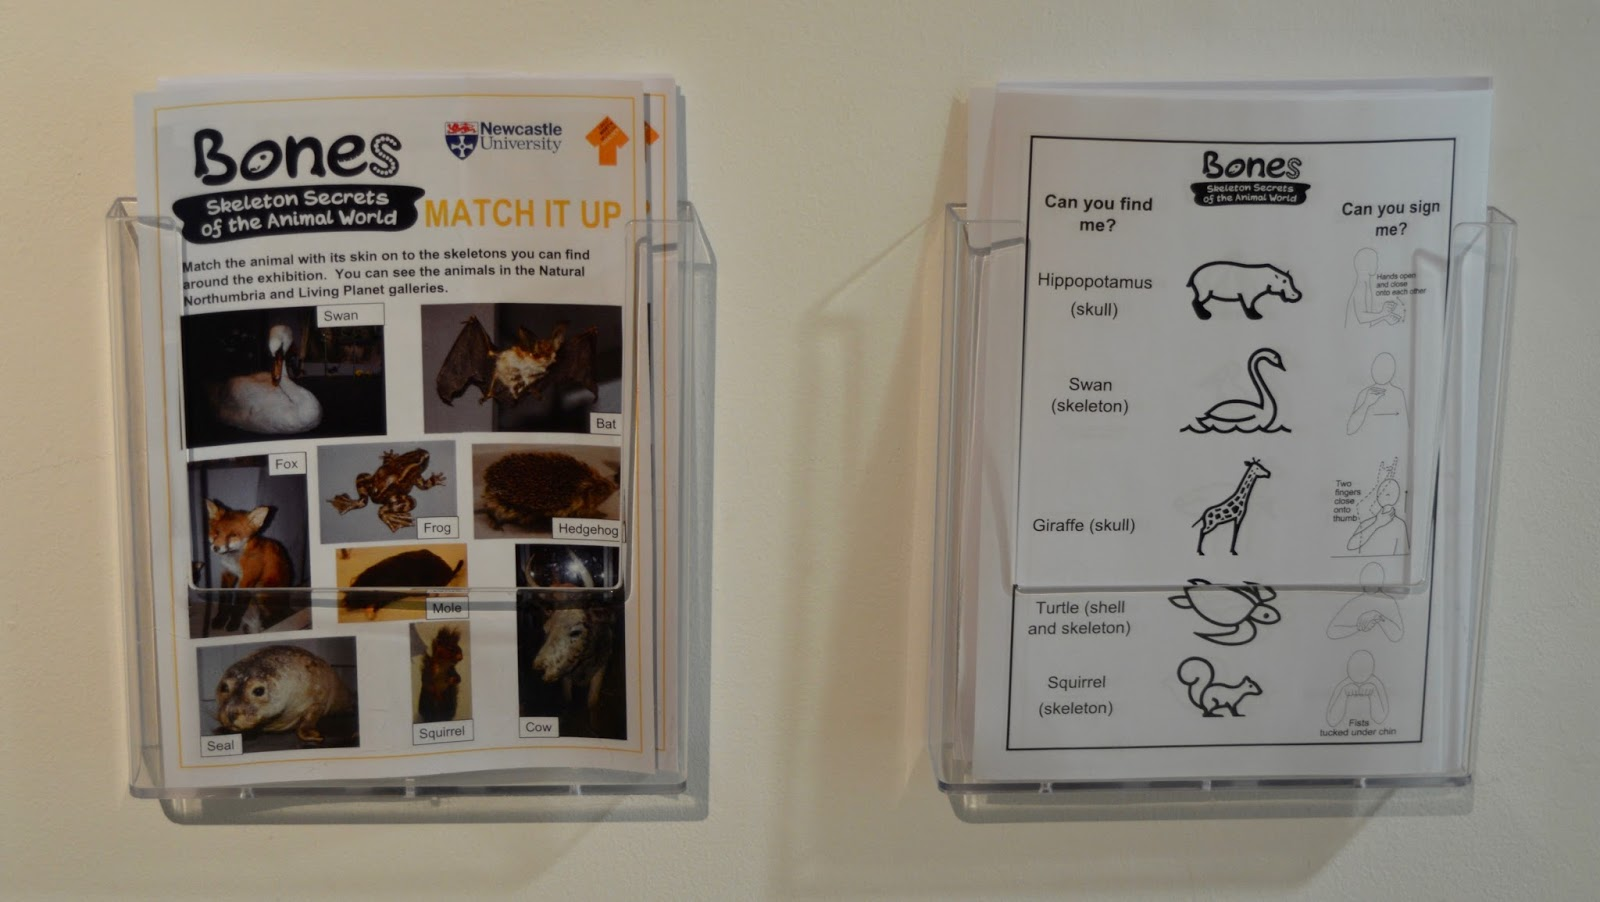 Bones Exhibition at Hancock Museum, Newcastle - activity sheets